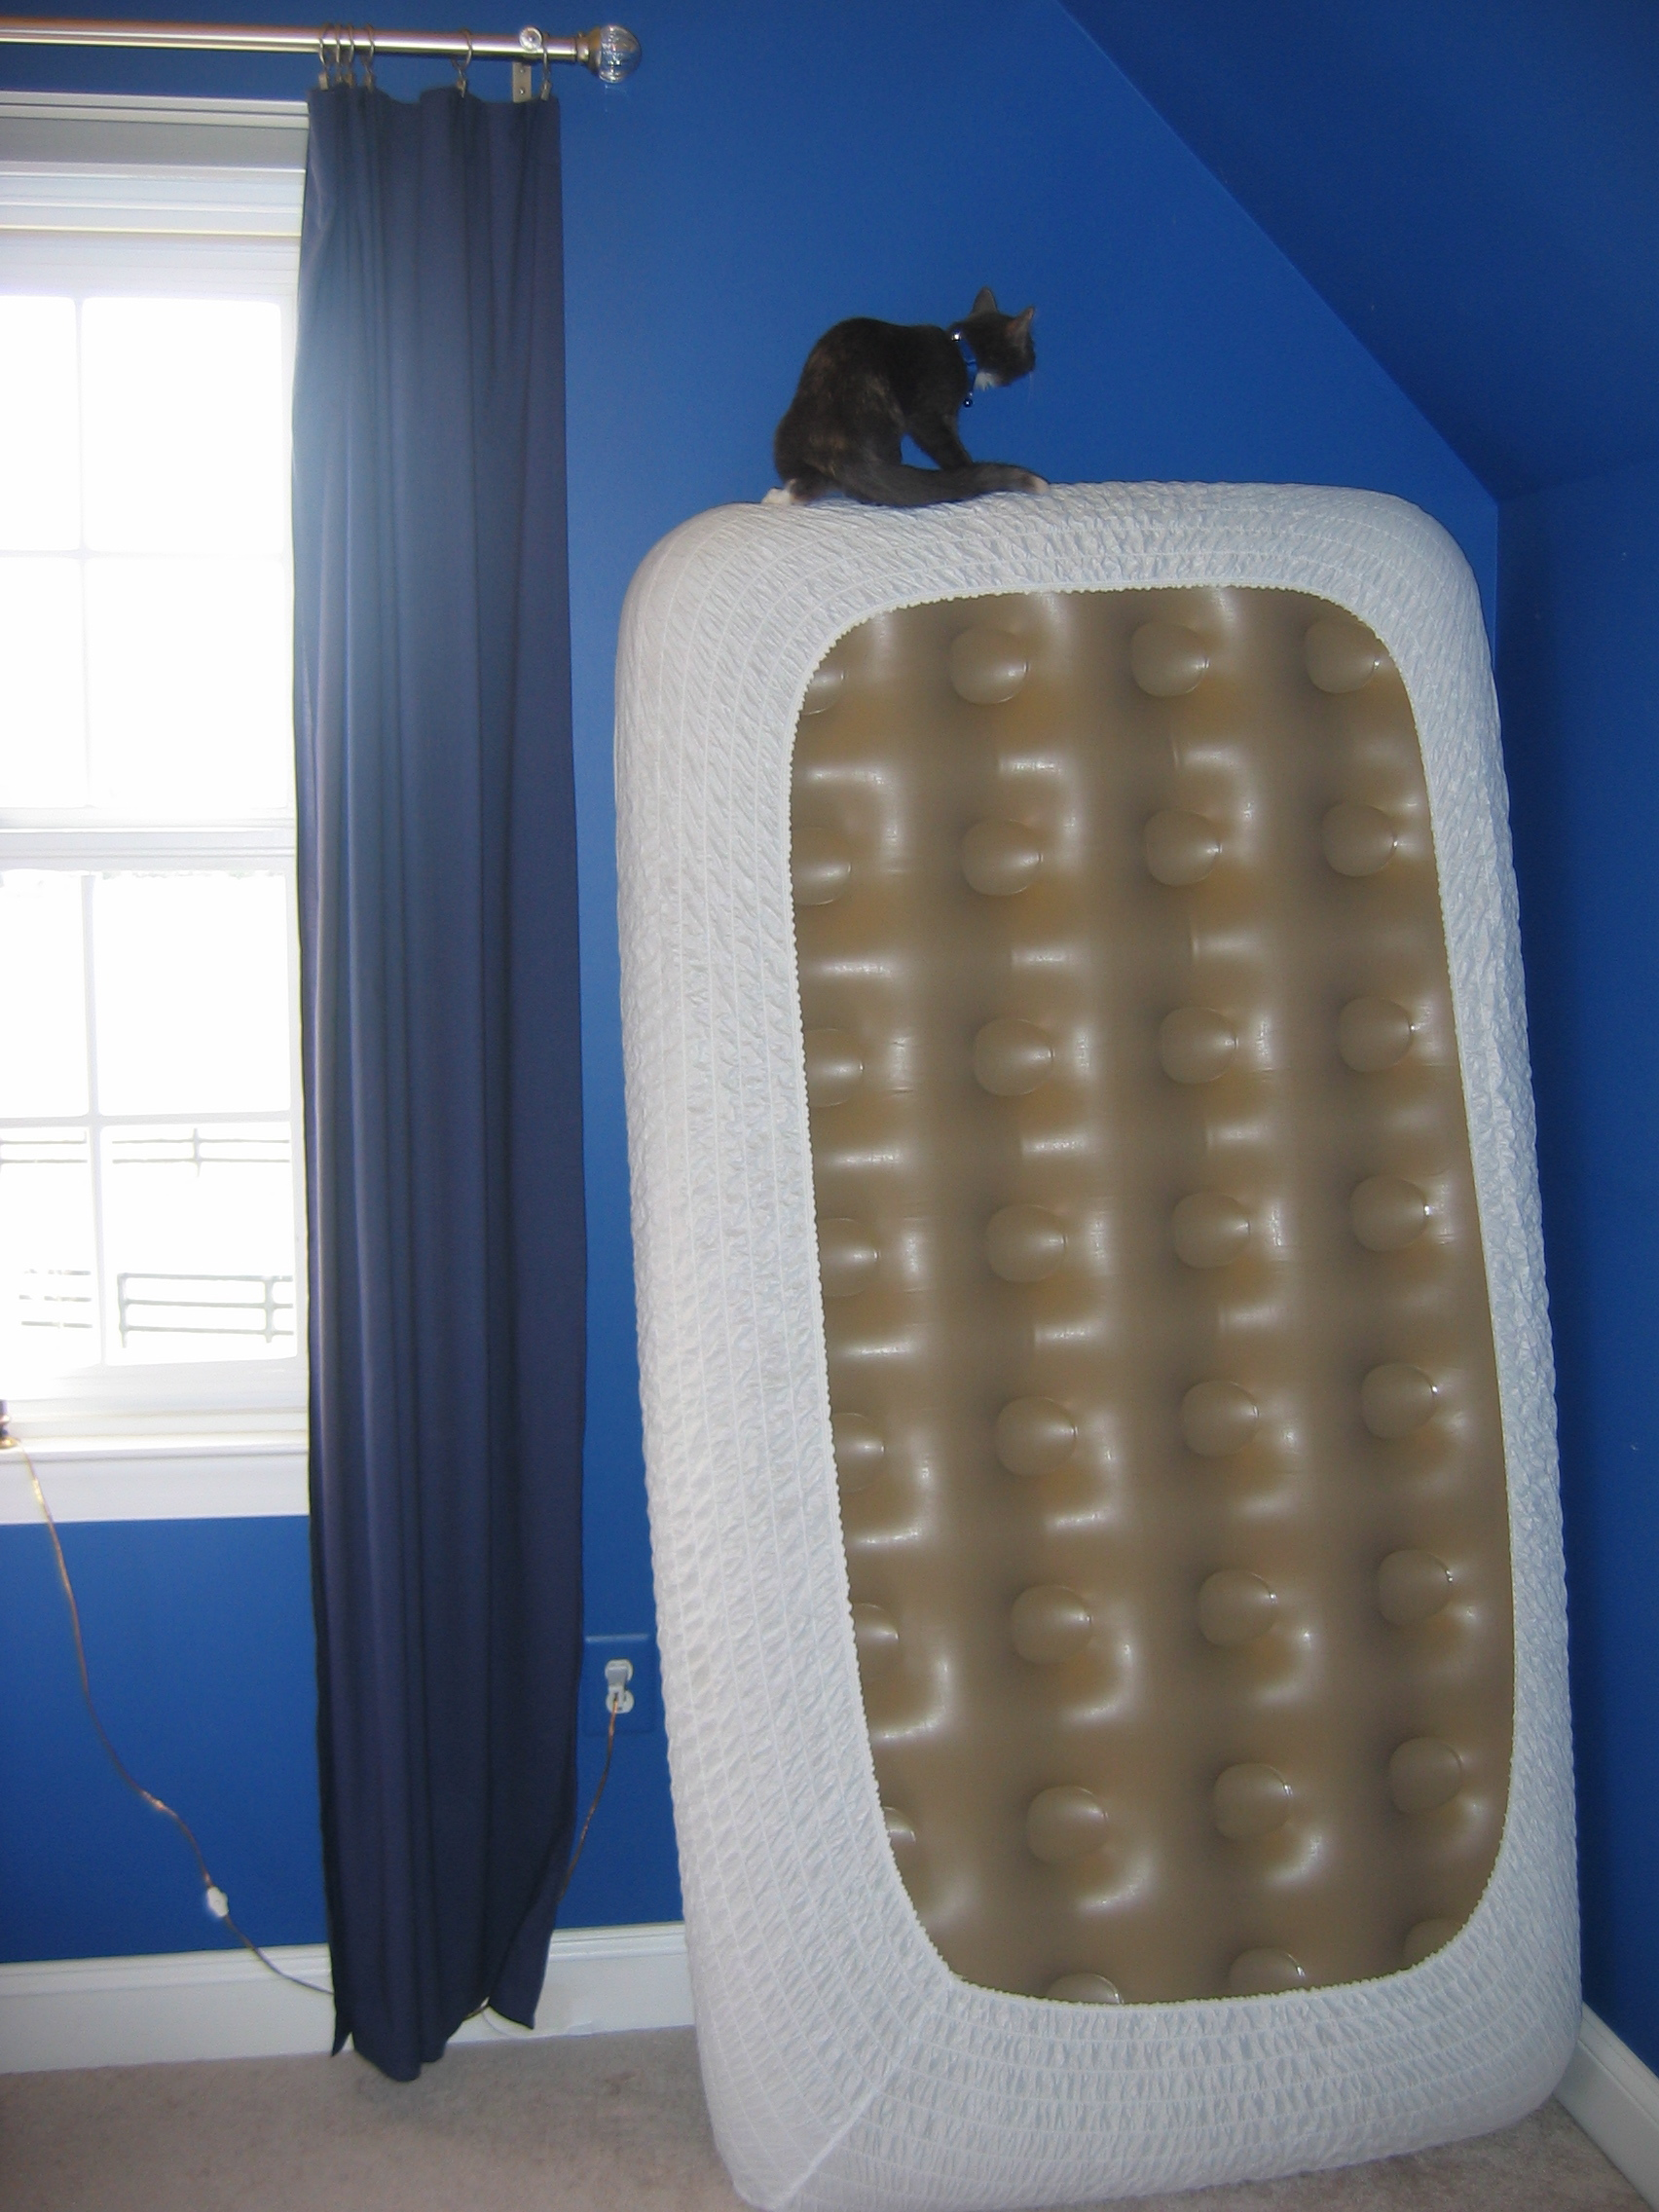 Heavy Duty Air Beds For Big People